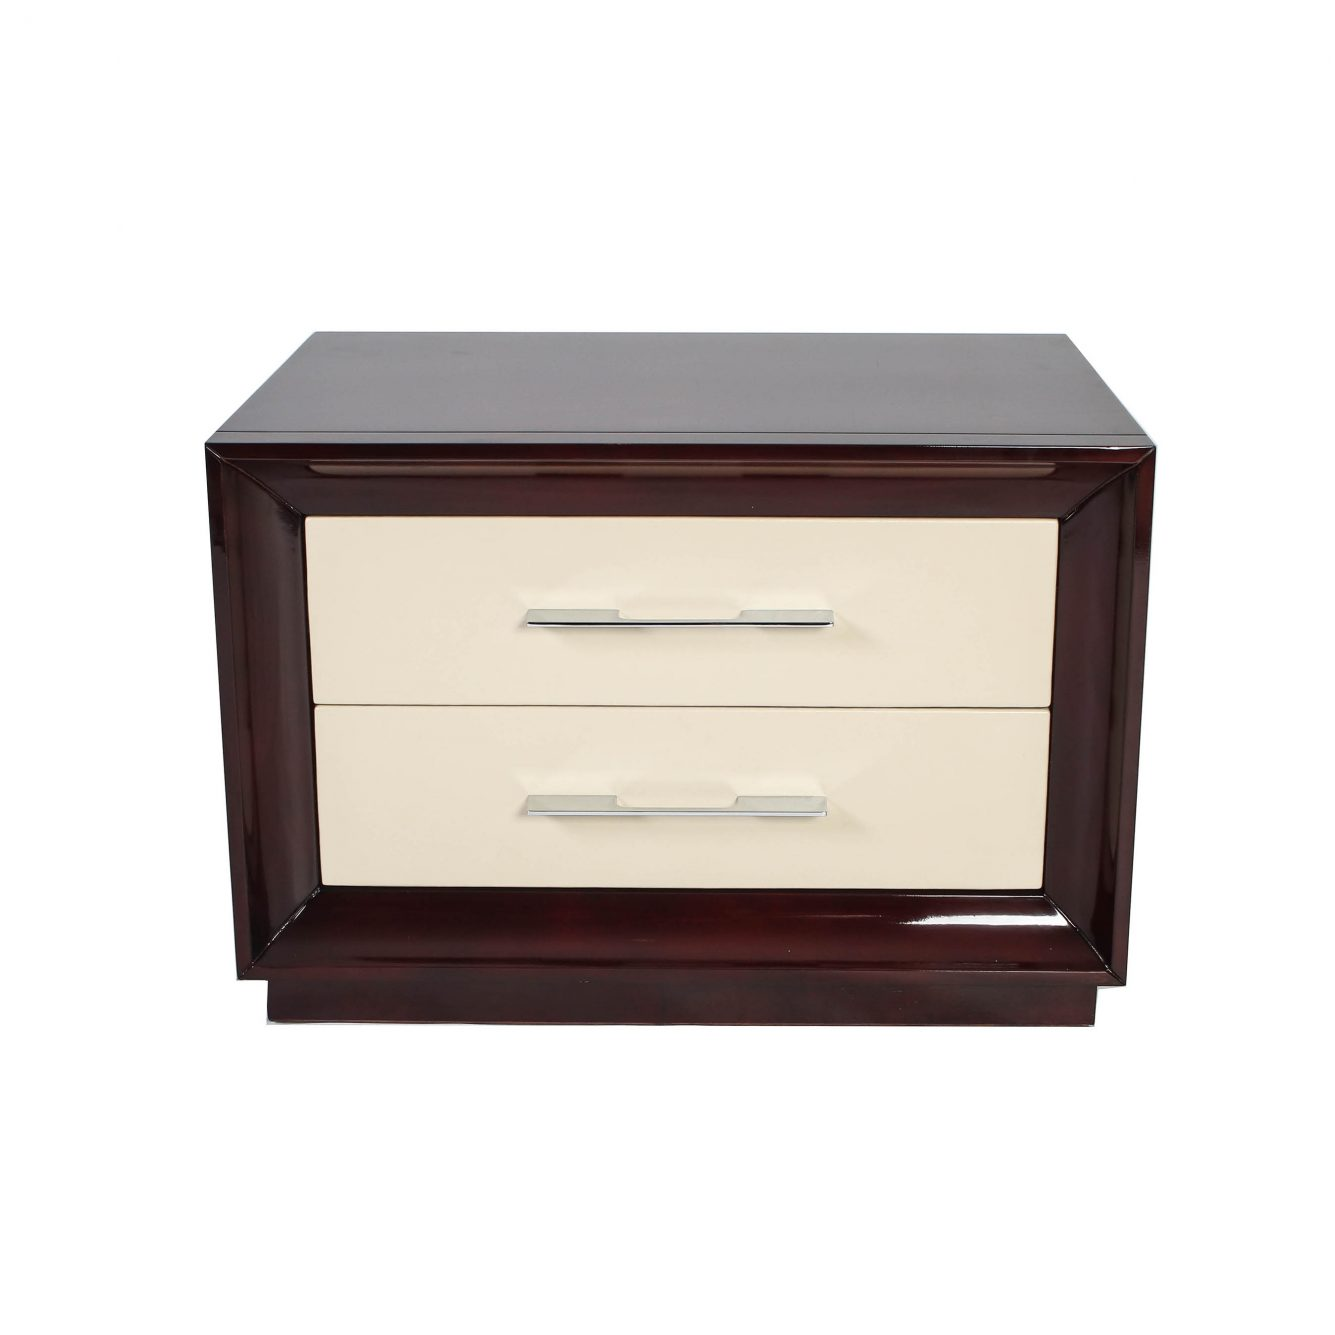 HH Products 0034 HOUSE HAVEN FURNITURE 53